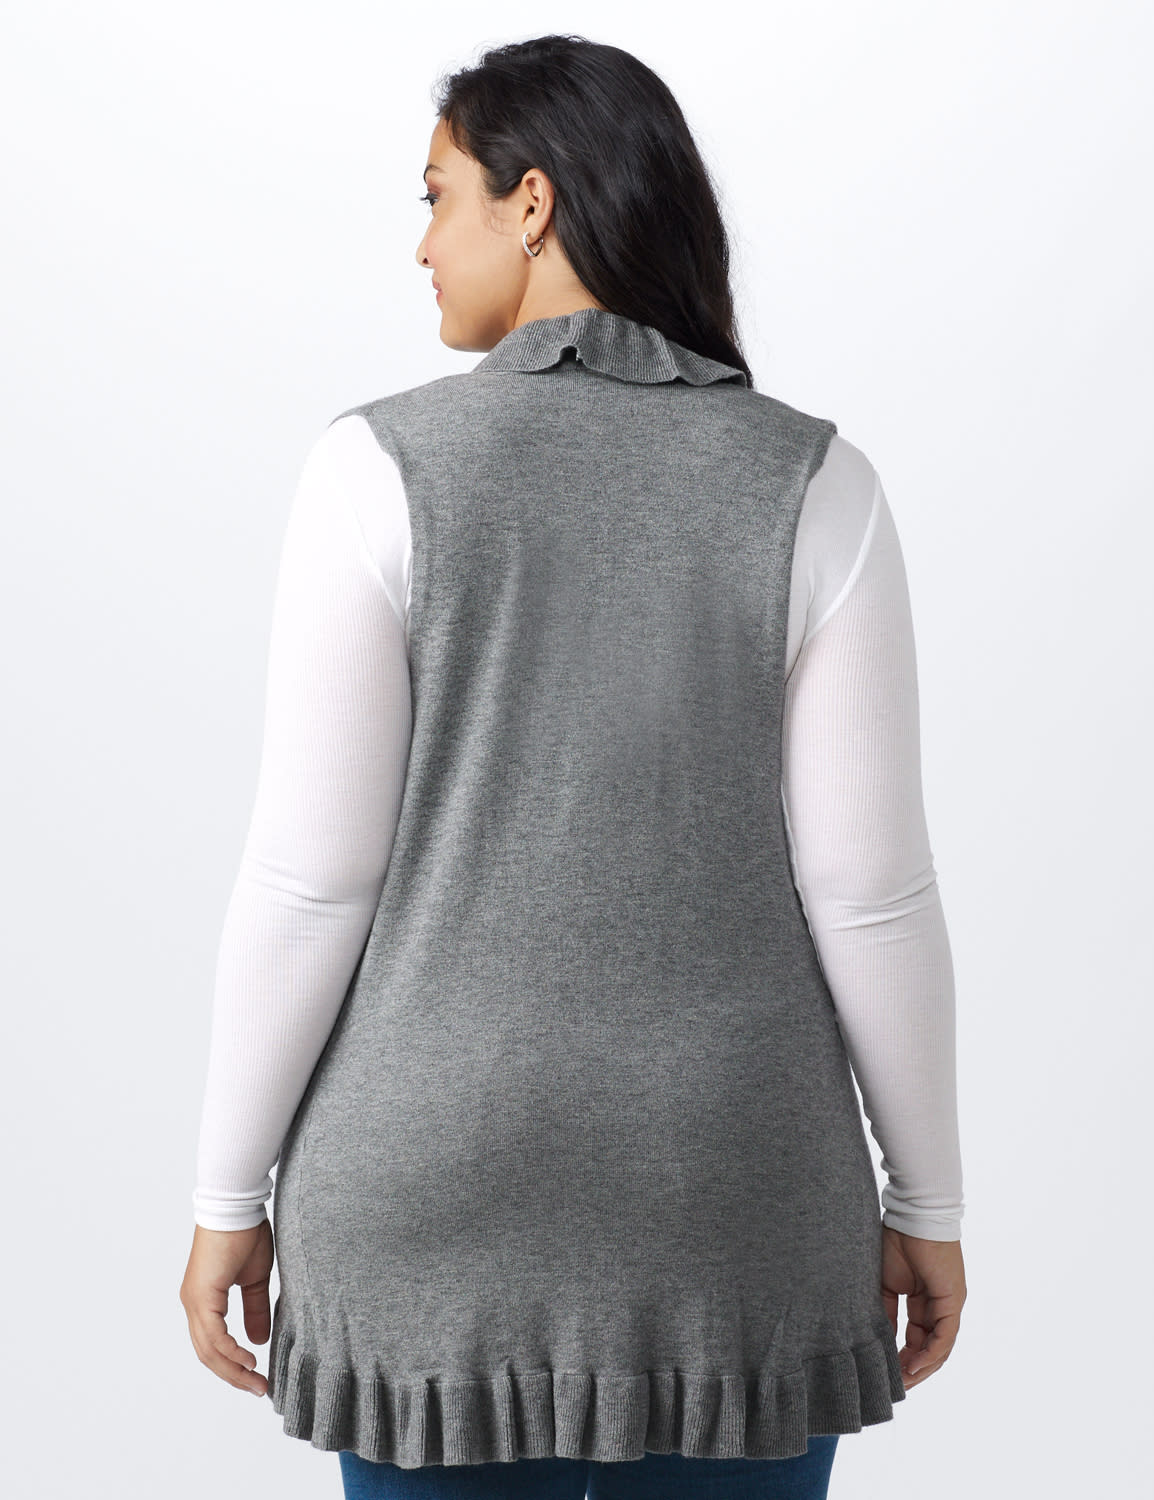 Roz & Ali Ruffle Sweater Vest - Plus - Heather Grey - Back